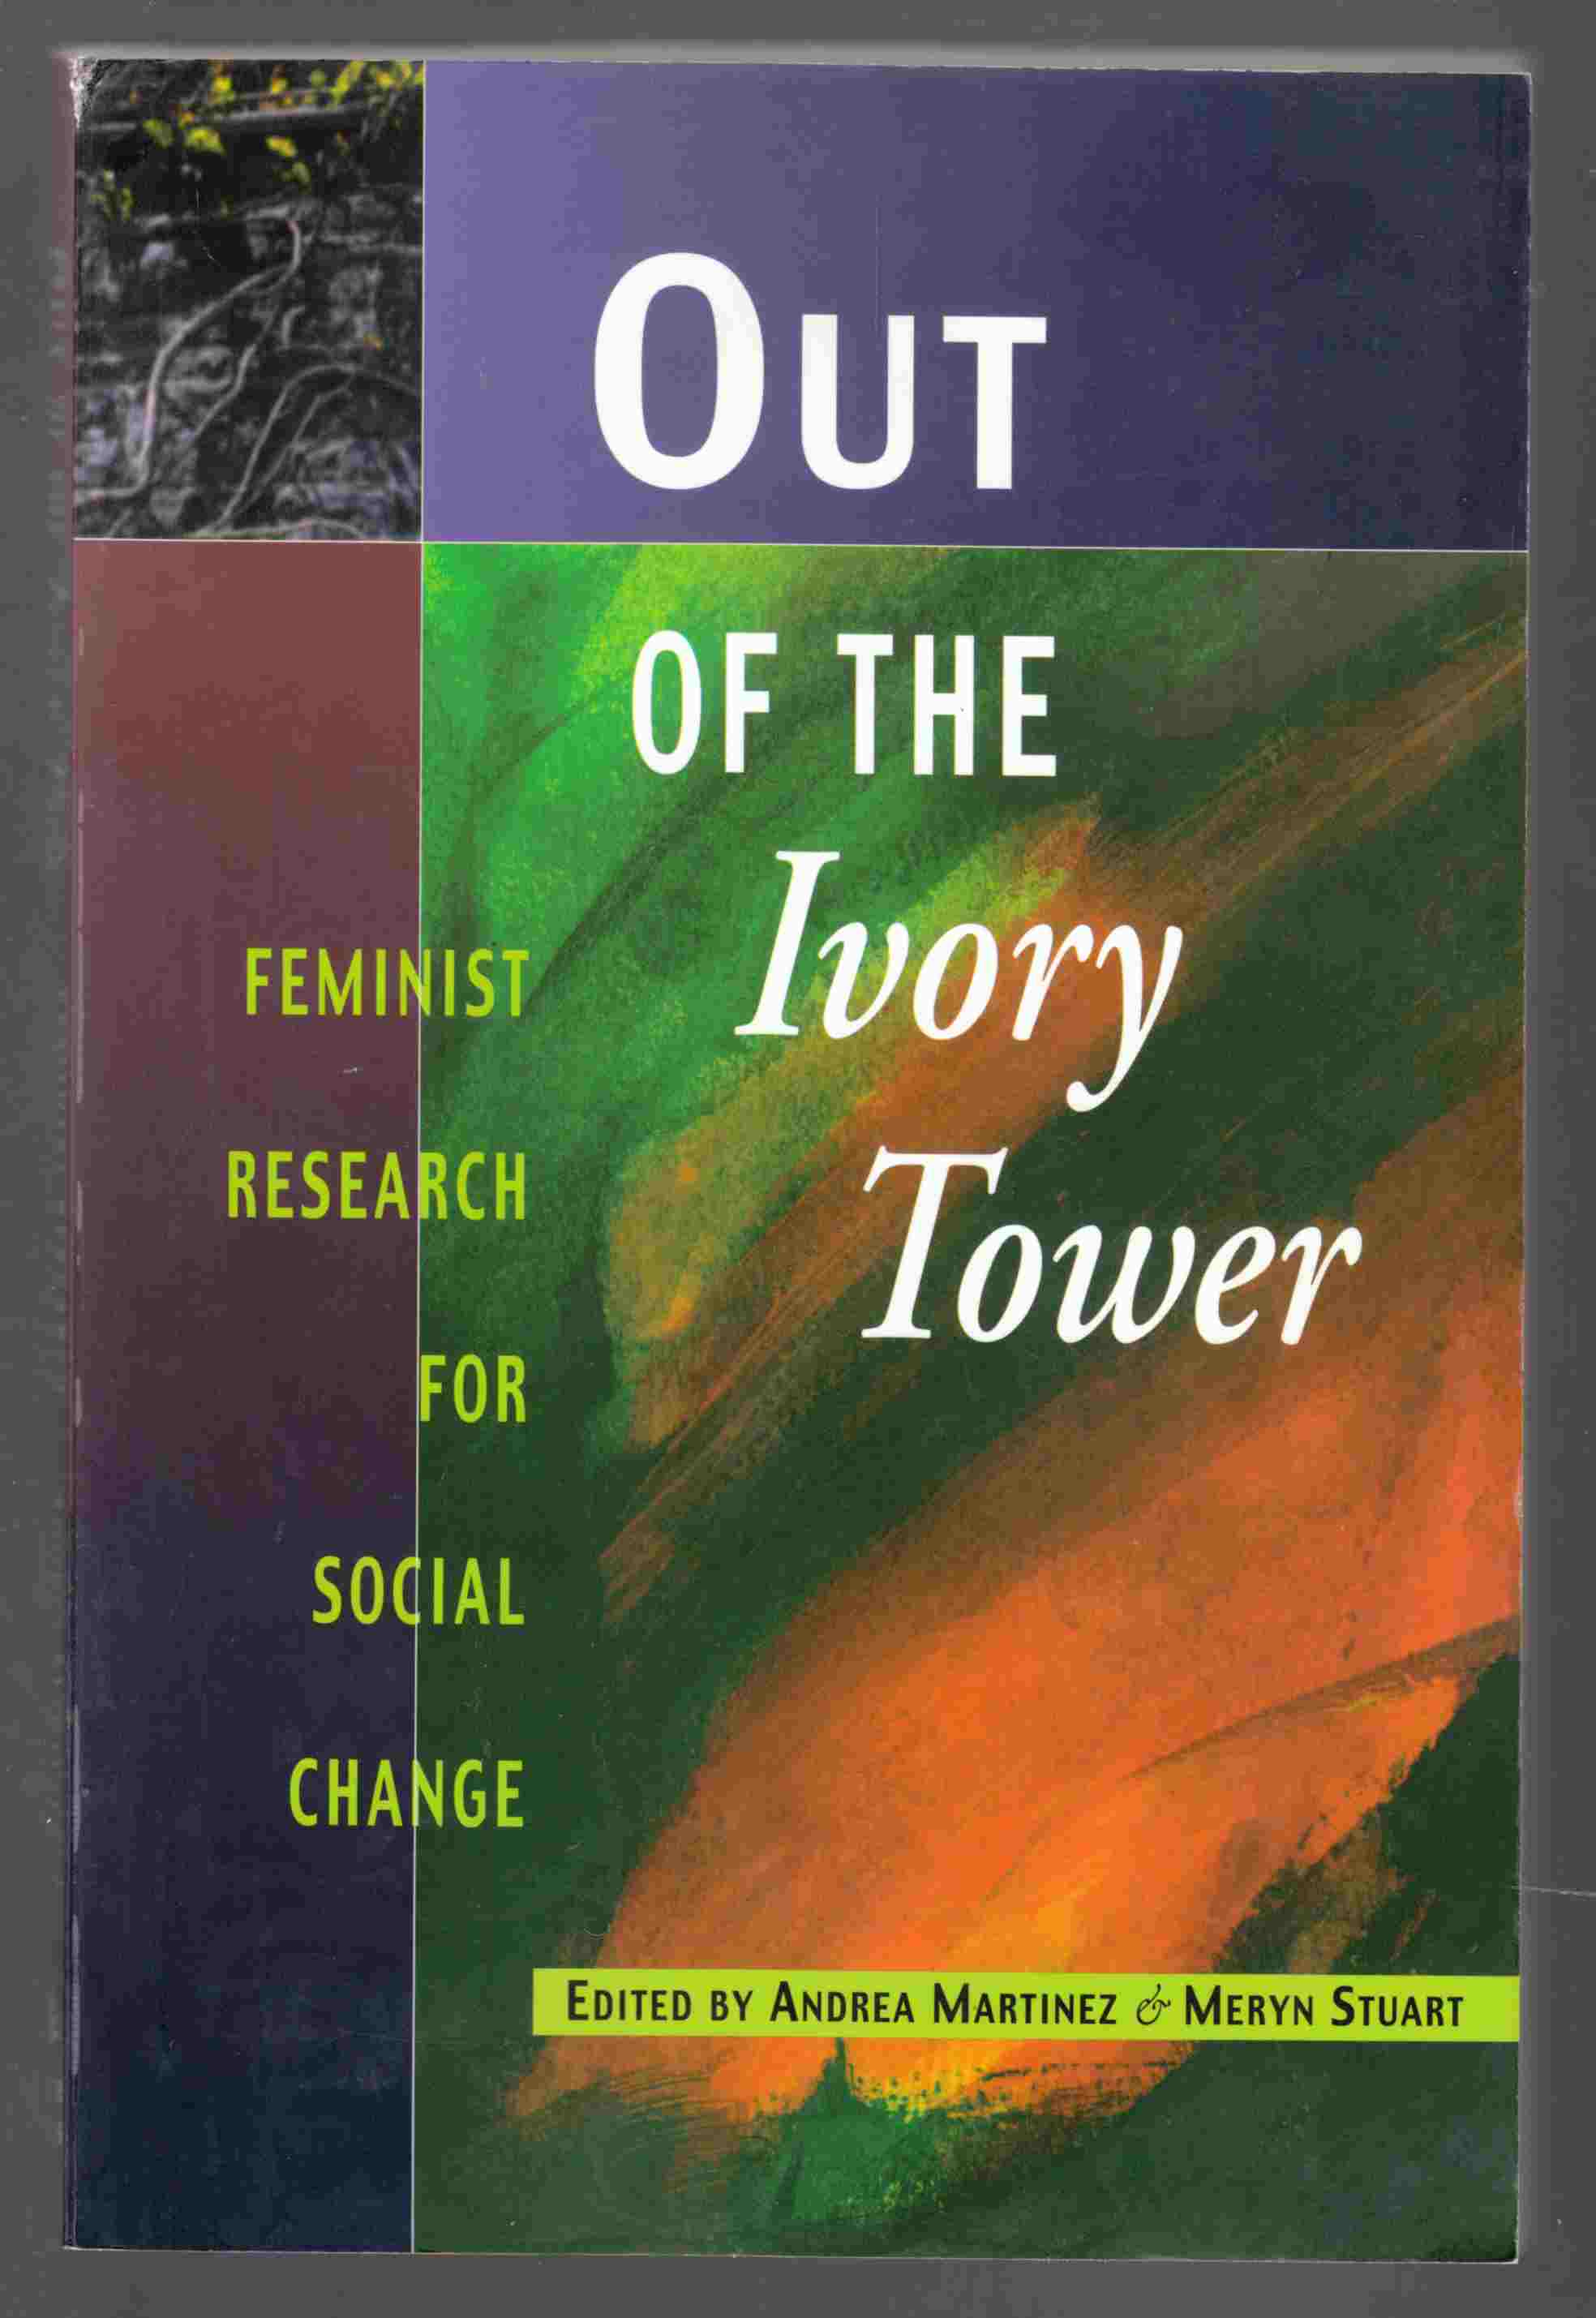 Image for Out of the Ivory Tower Feminist Research for Social Change